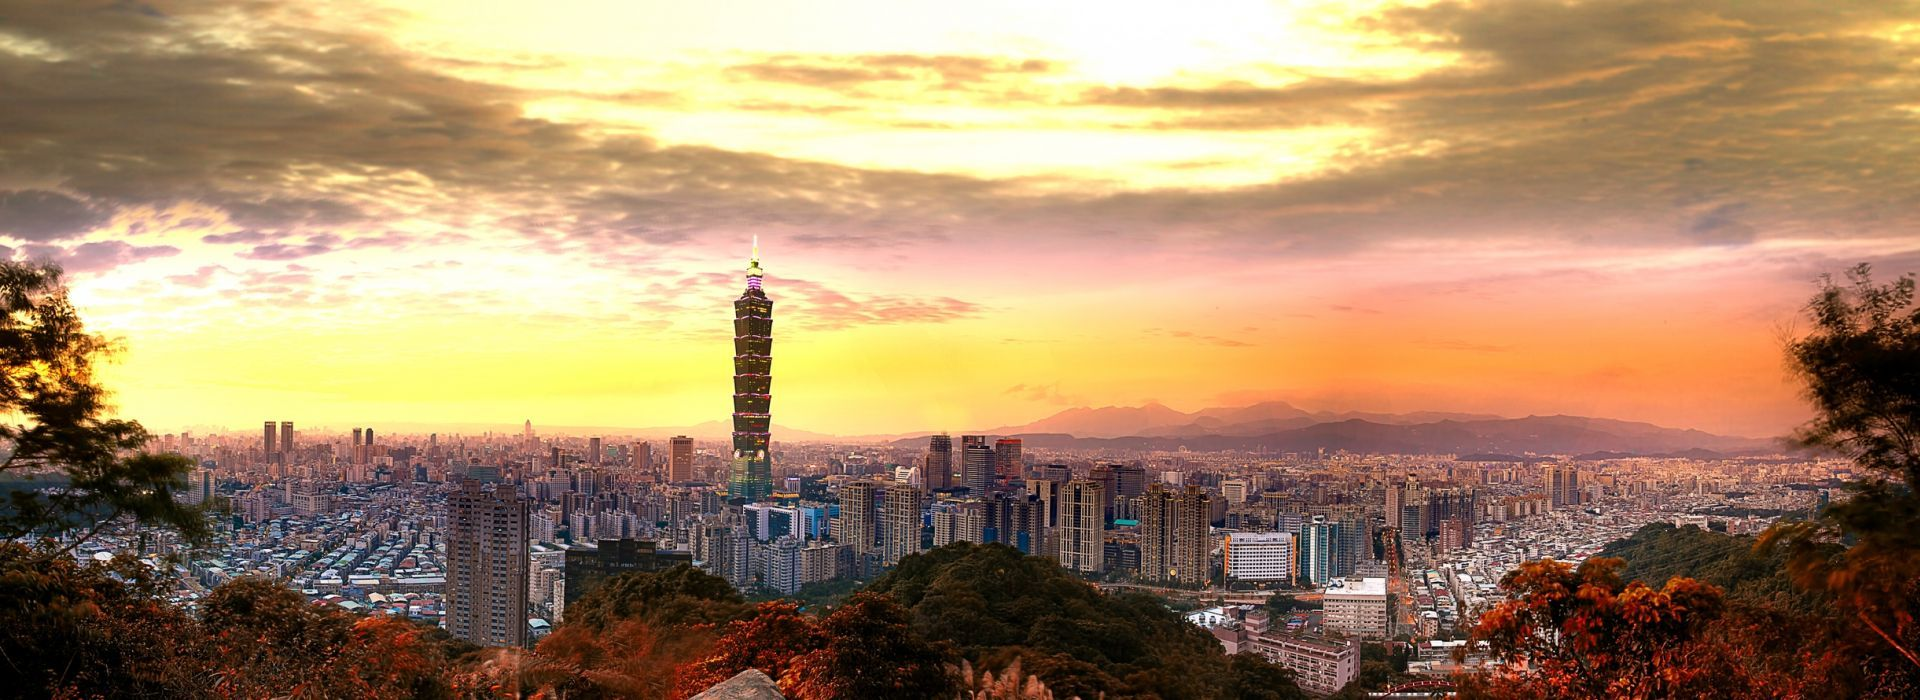 Taiwan Tours and Trips to Taiwan